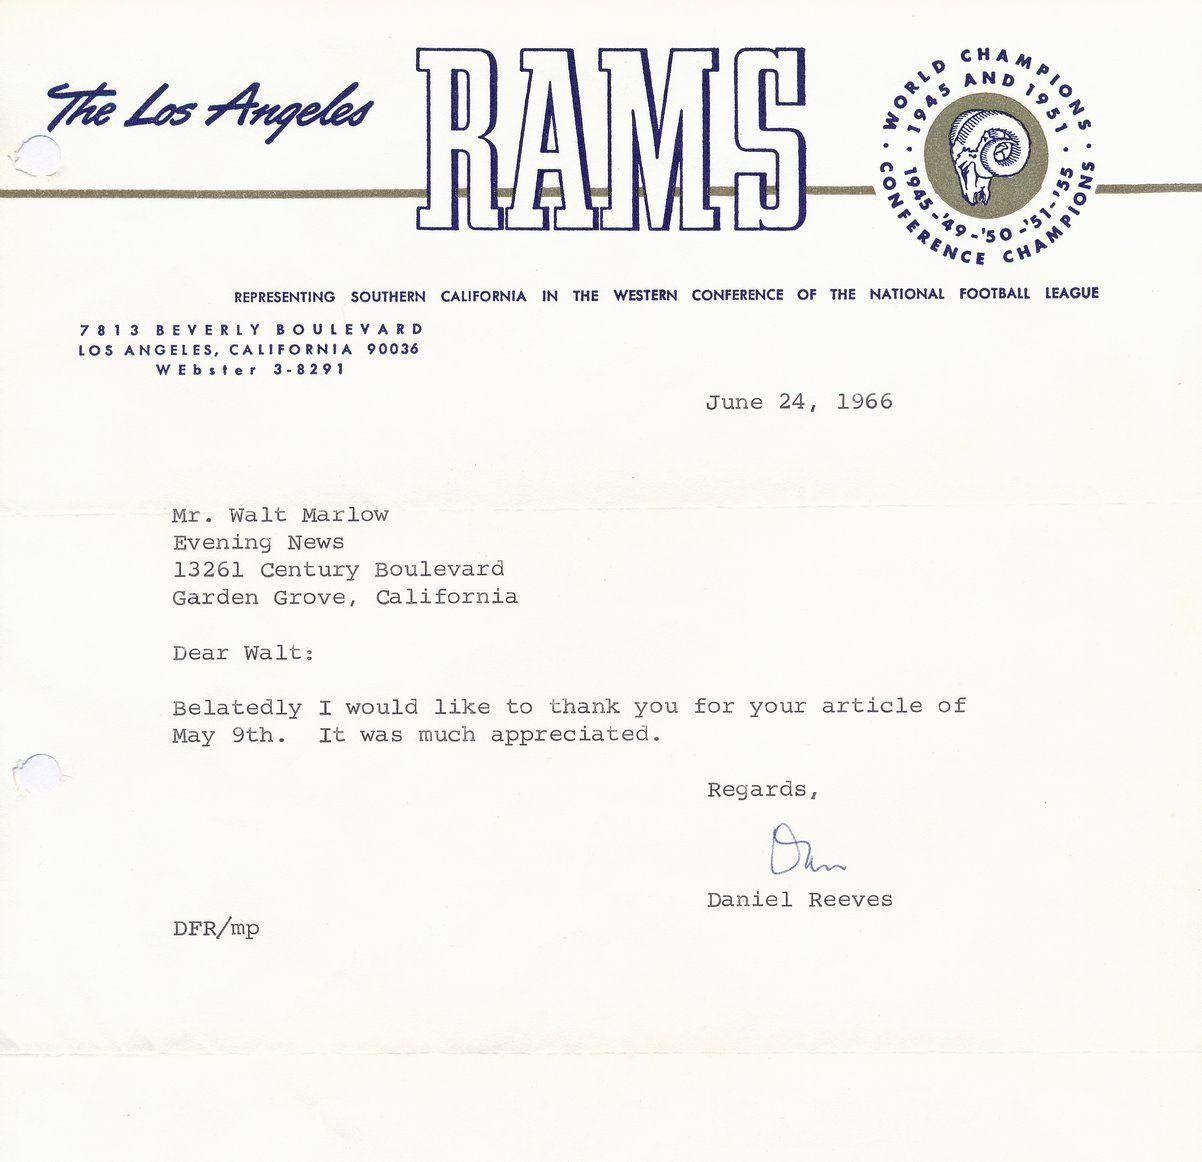 Dan Reeves Rams HOF d 1971 Autographed TLS on Rams Letterhead SIGNED 137200 JSA Certified NFL Cut Signatures